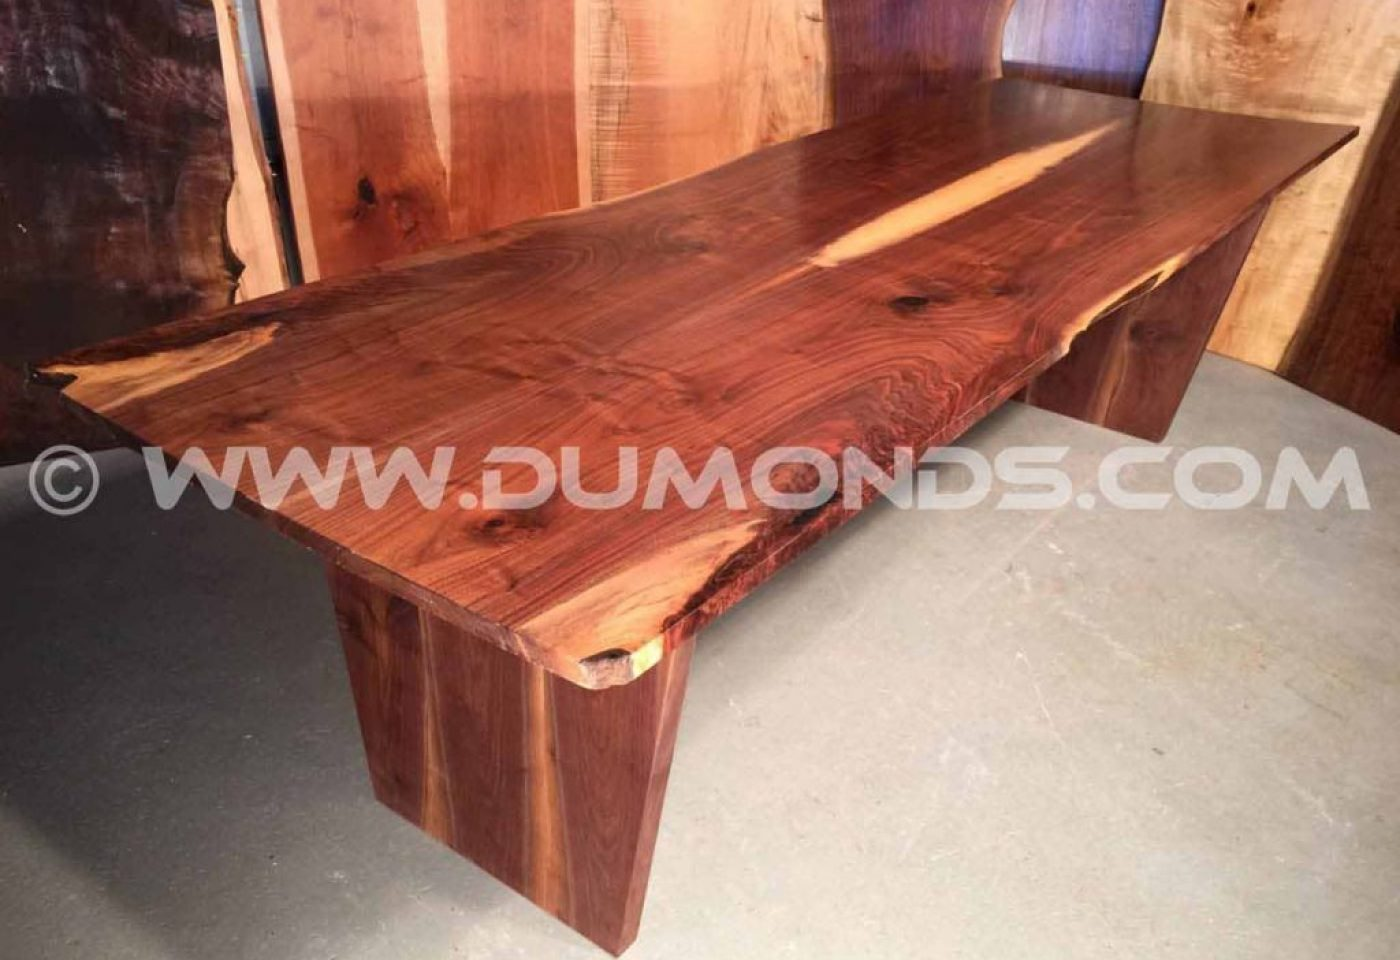 BOOK MATCHED WALNUT LIVE EDGE SLAB TABLE WITH WALNUT TAPERED LEG BASE